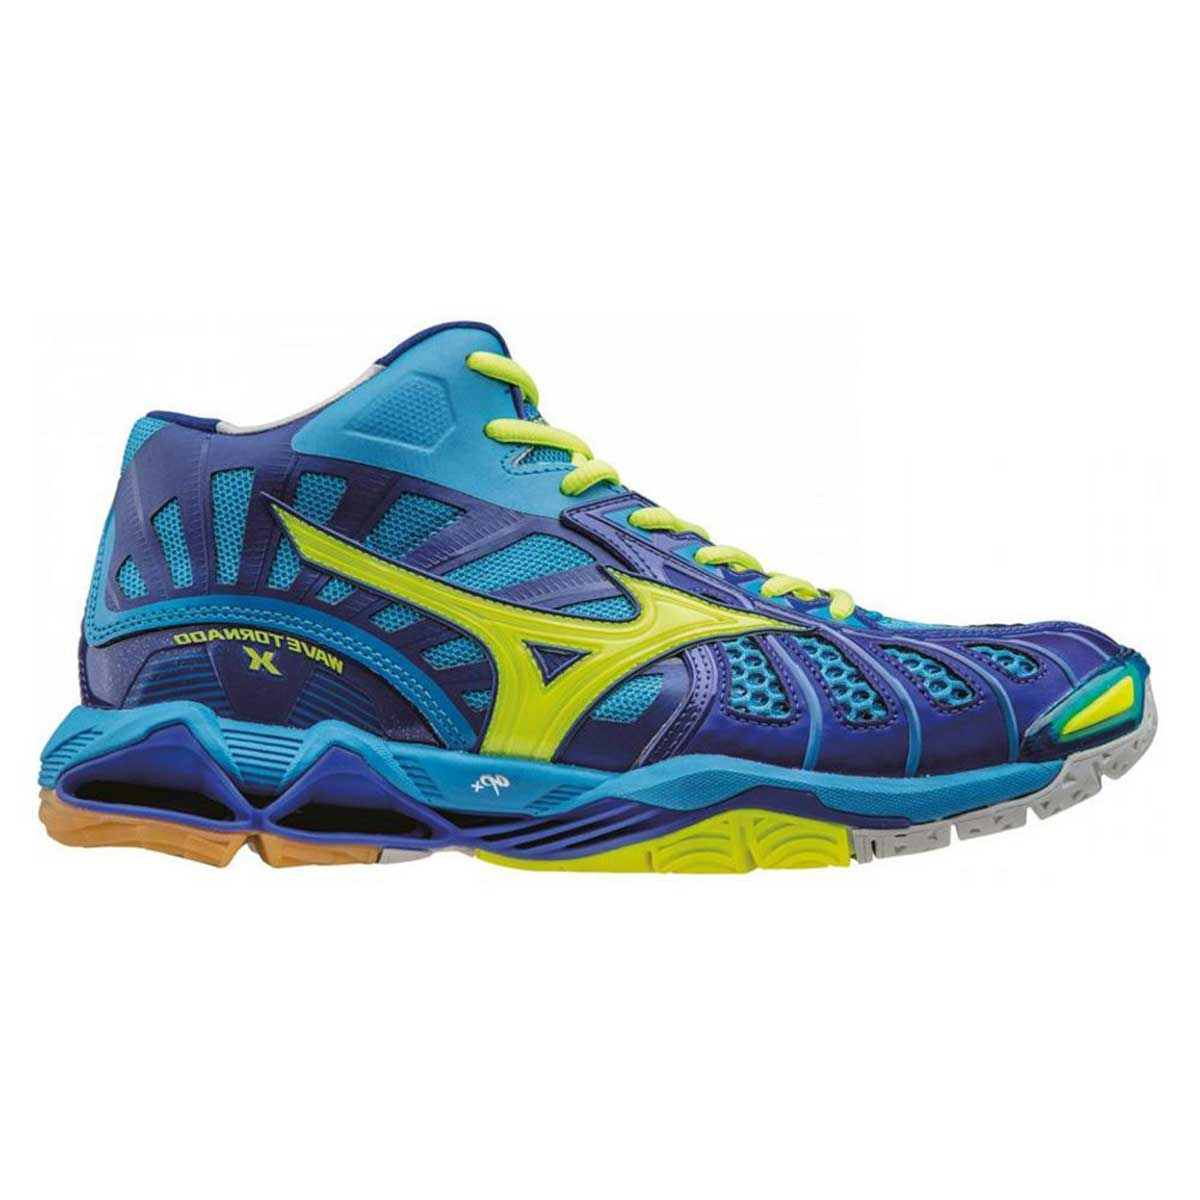 taille 40 1c3d5 ae7b4 Mizuno Wave Tornado X Mid Indoor Court Shoes (Diva Blue/Safety Yellow/Surf  The Web)